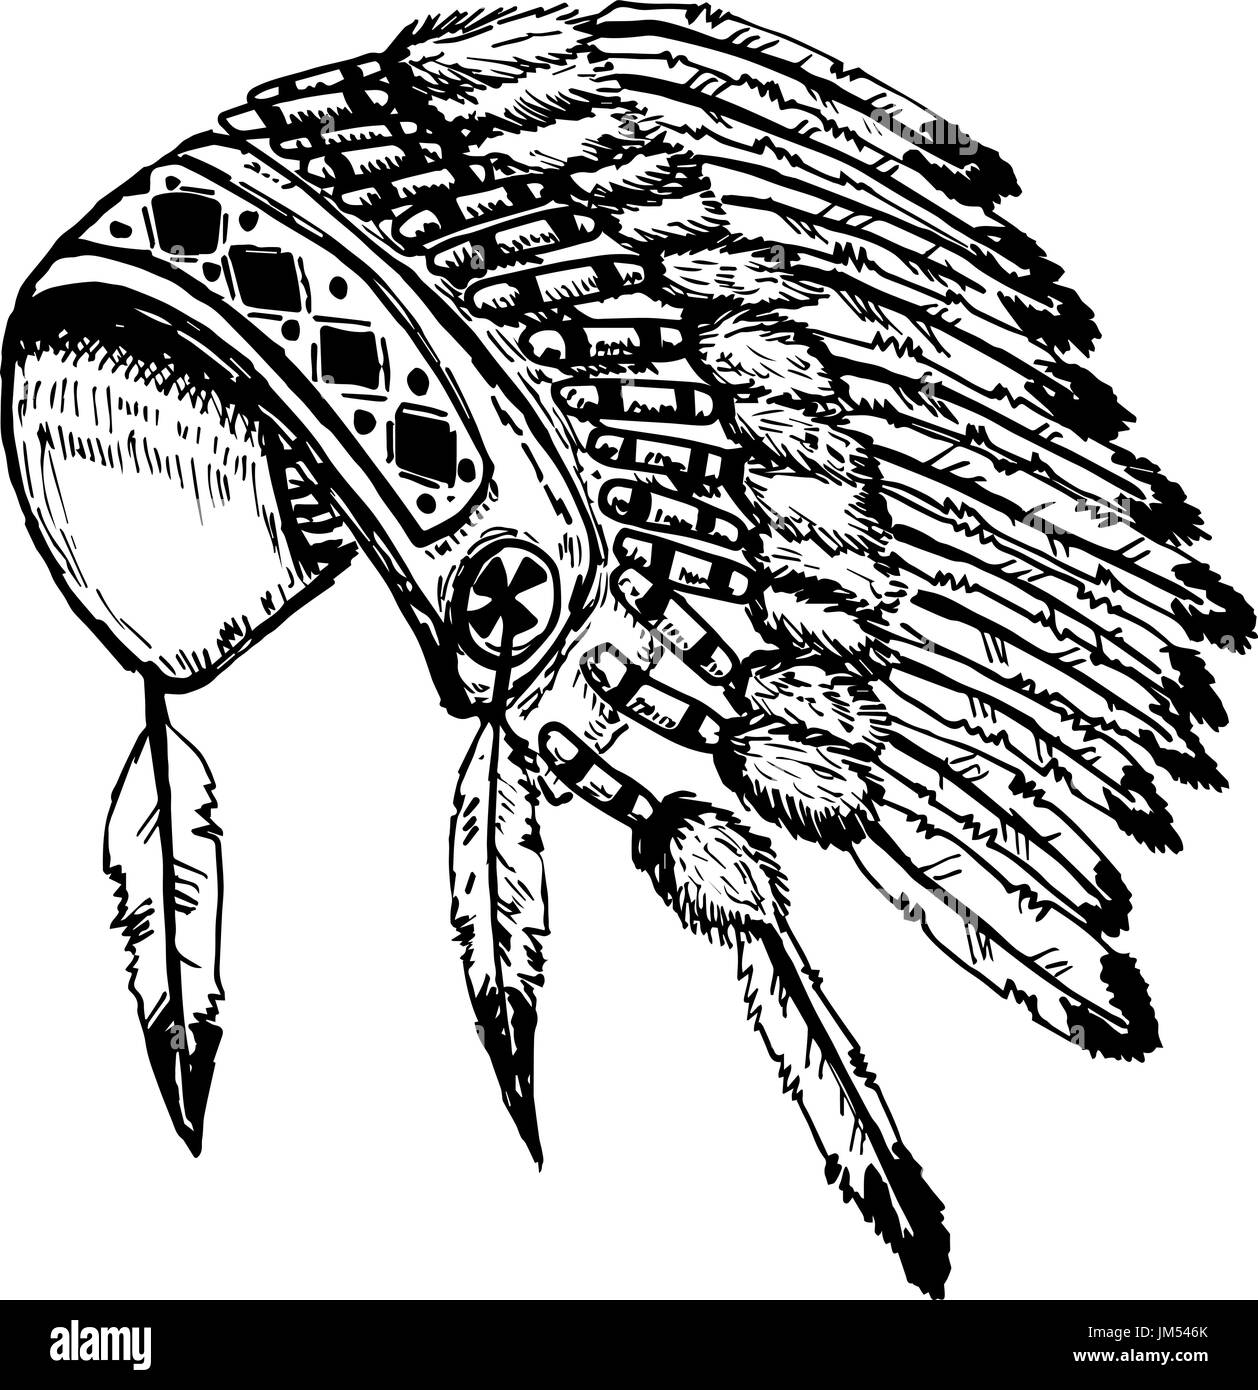 Native american indians chief headdress isolated on white background vector illustration - Stock Image